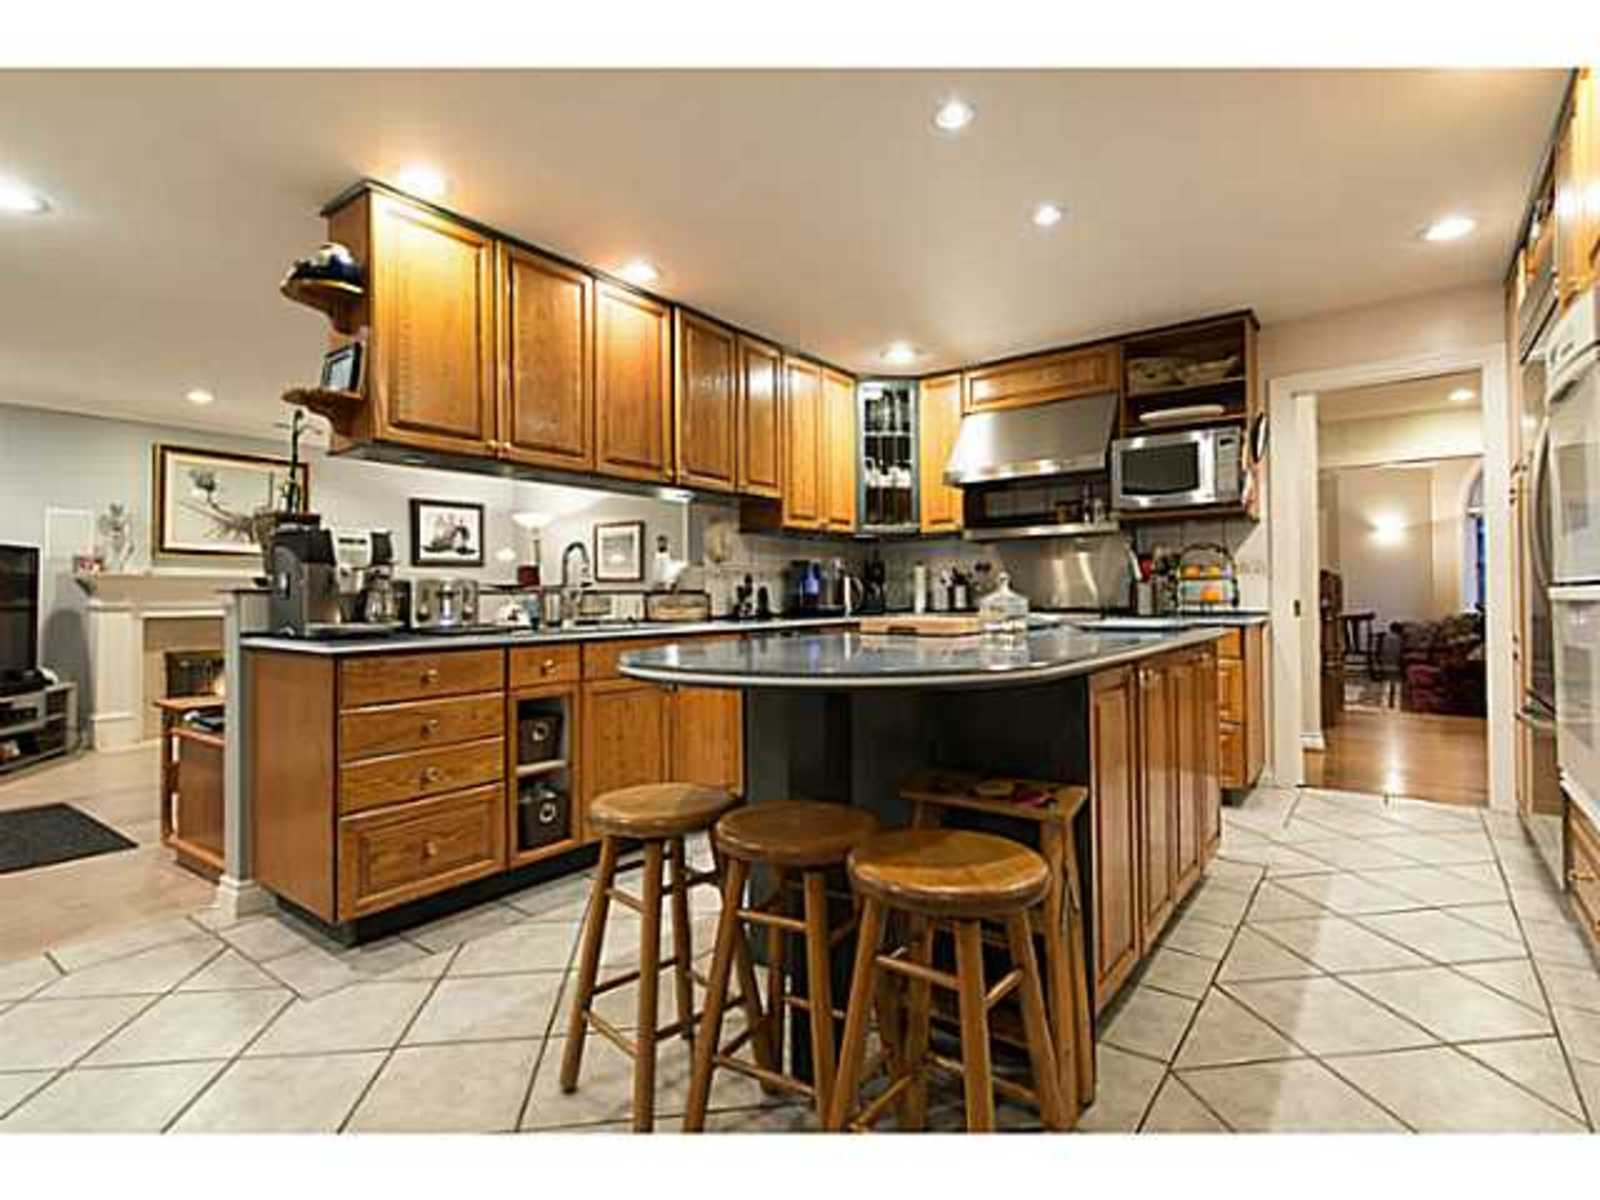 image-260912312-5.jpg at 833 Sprice Ave,